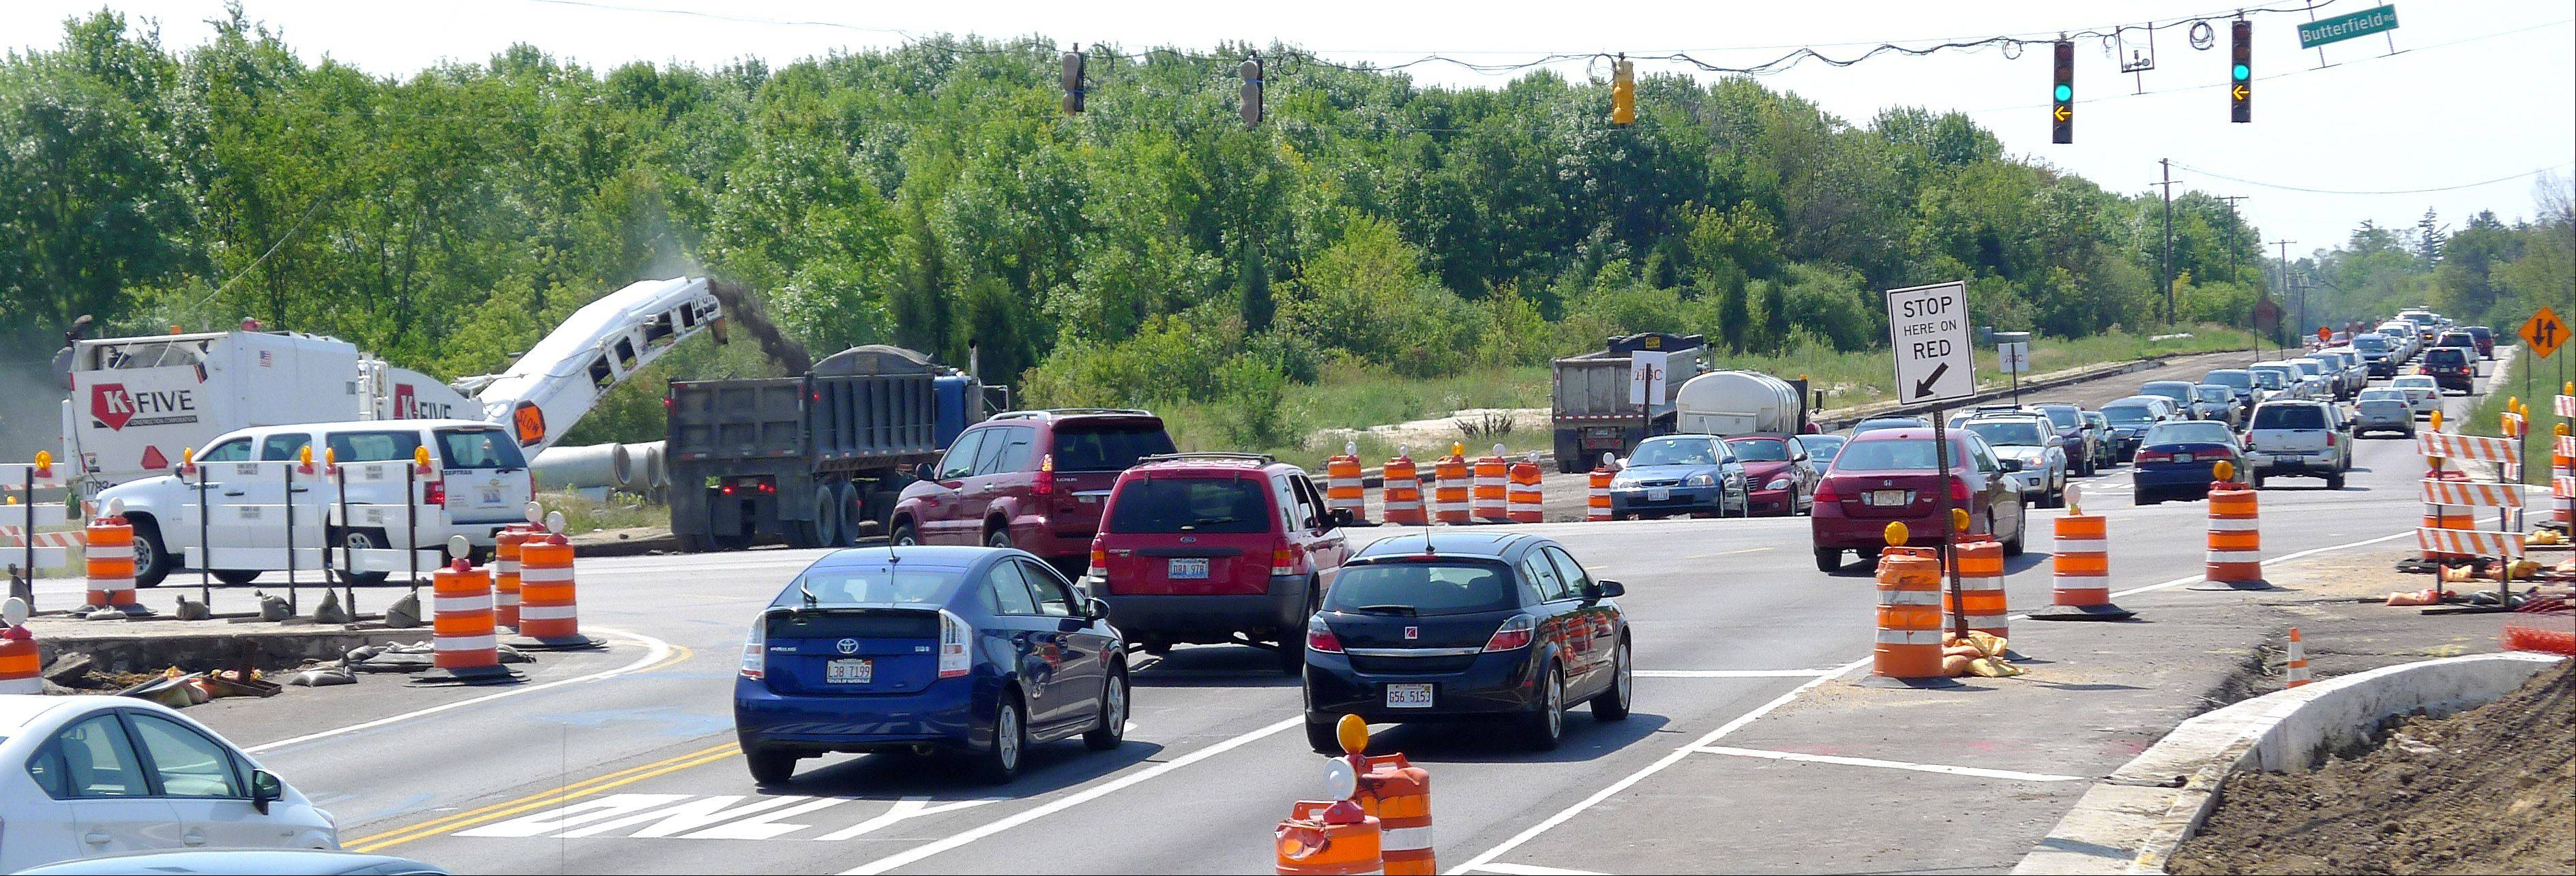 Delays at two major intersections along the $52.5 million Butterfield Road widening project are expected to last until late fall.